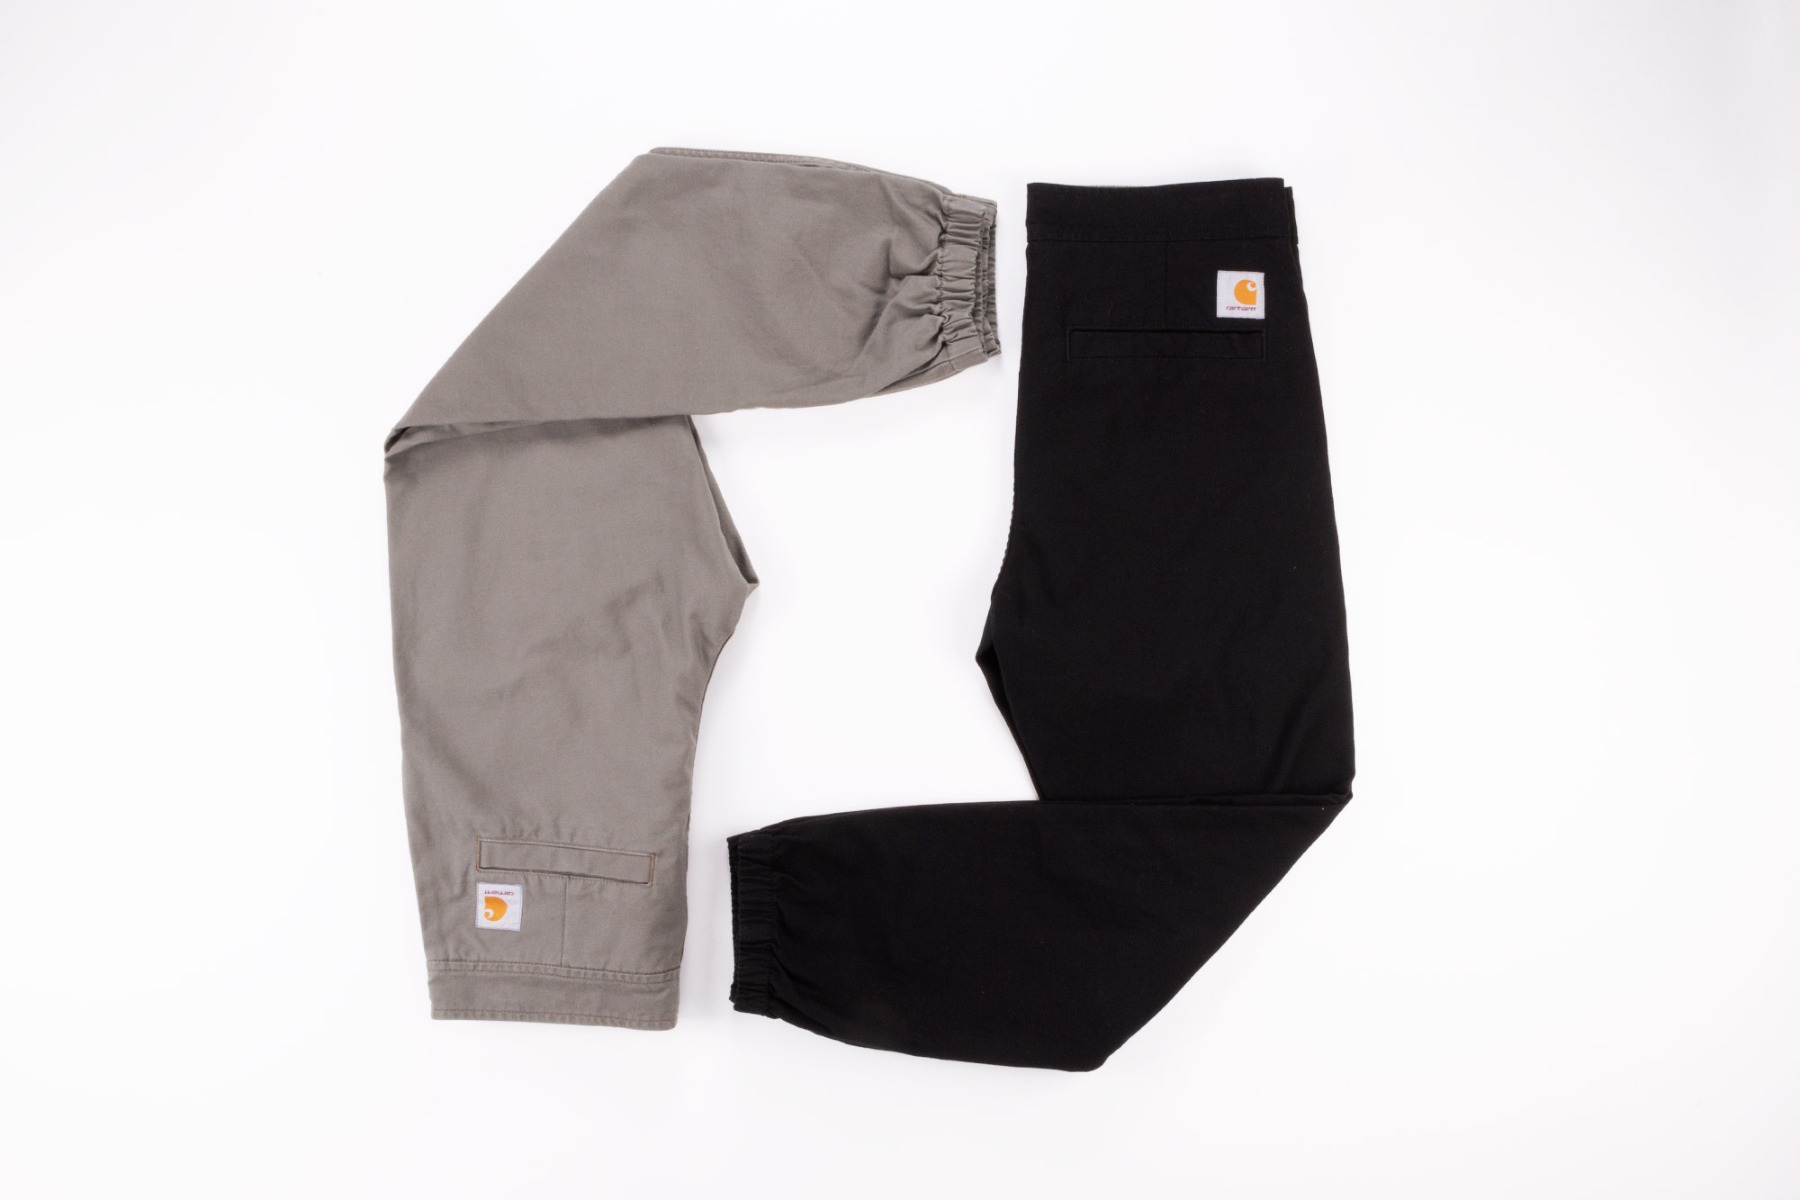 carhartt wip twill marshall joggers cuffed chinos available at wellgosh